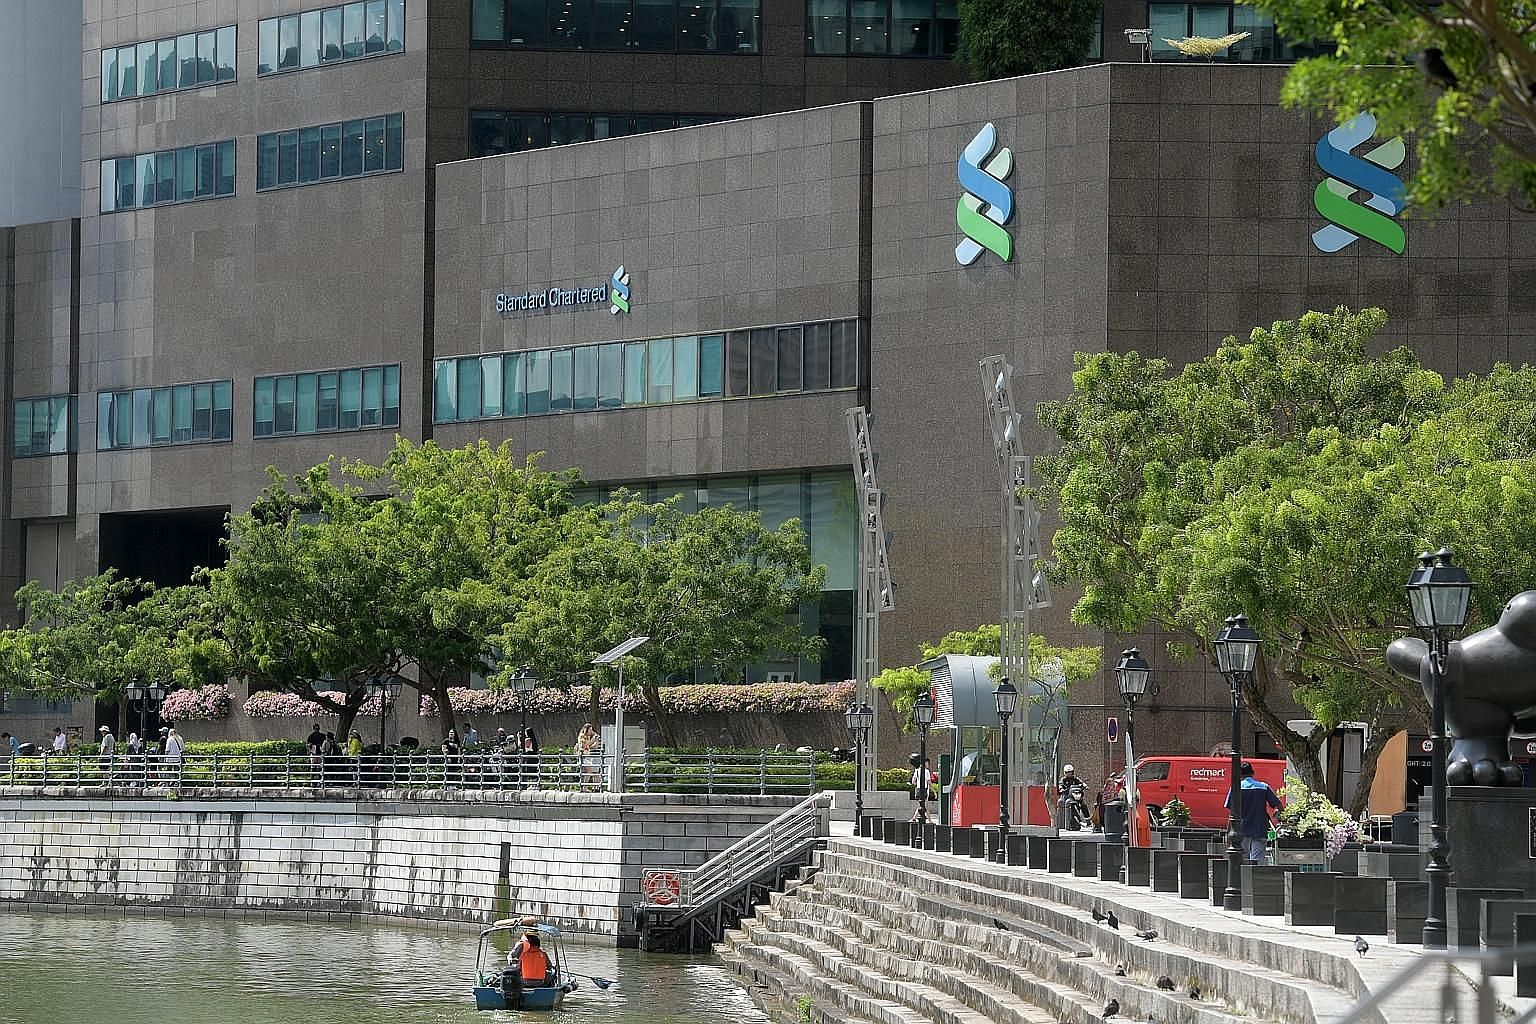 Standard Chartered's job cuts are expected to include Singapore staff, according to people familiar with the matter. Bloomberg News had reported last week that the bank is pressing ahead to create two Asian hubs - one based in Singapore and another i